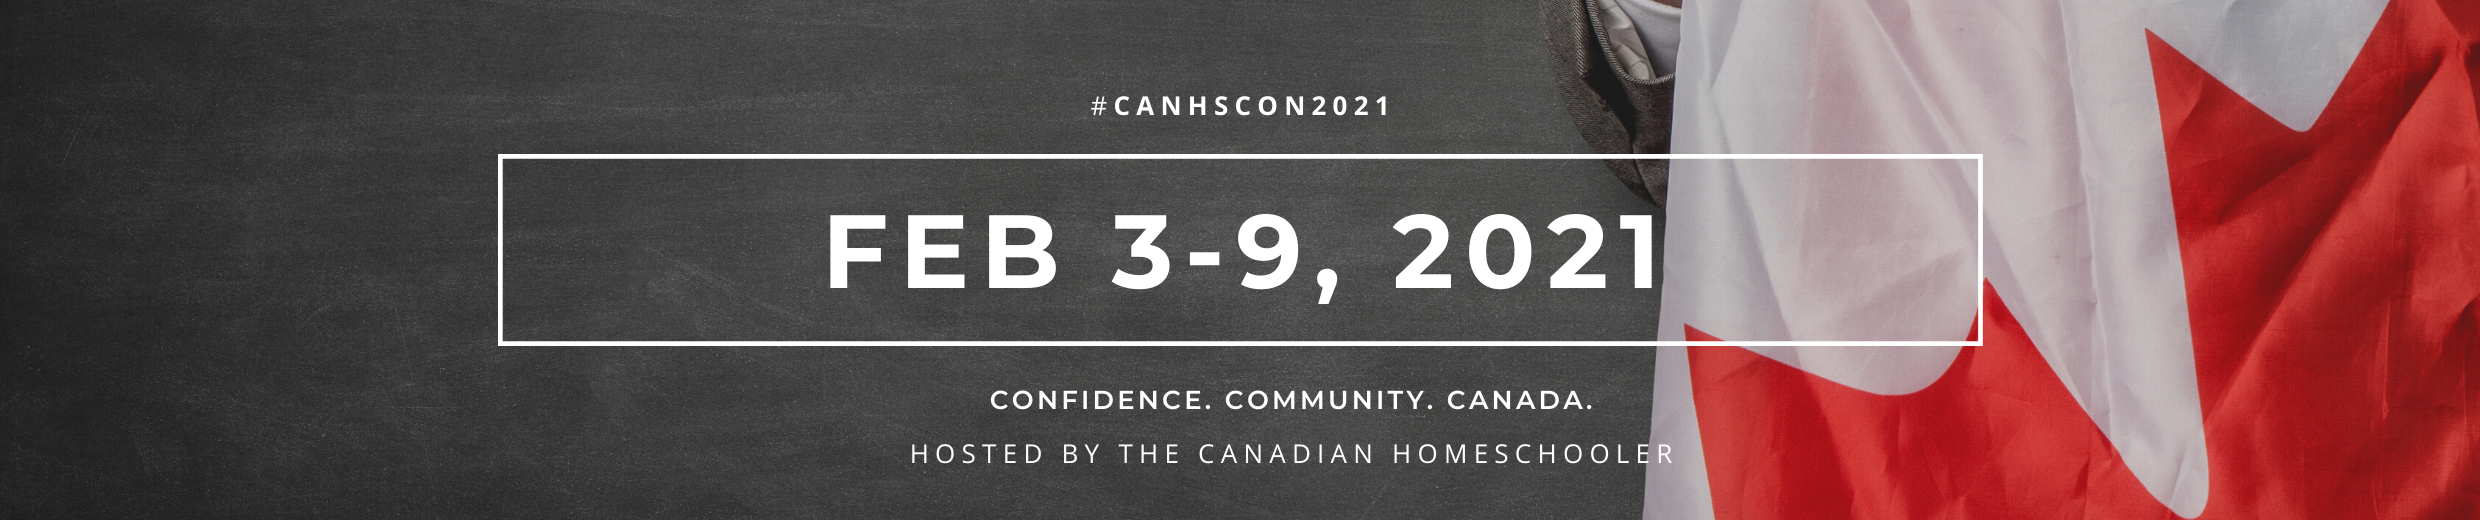 CANHSCON2021_Banner